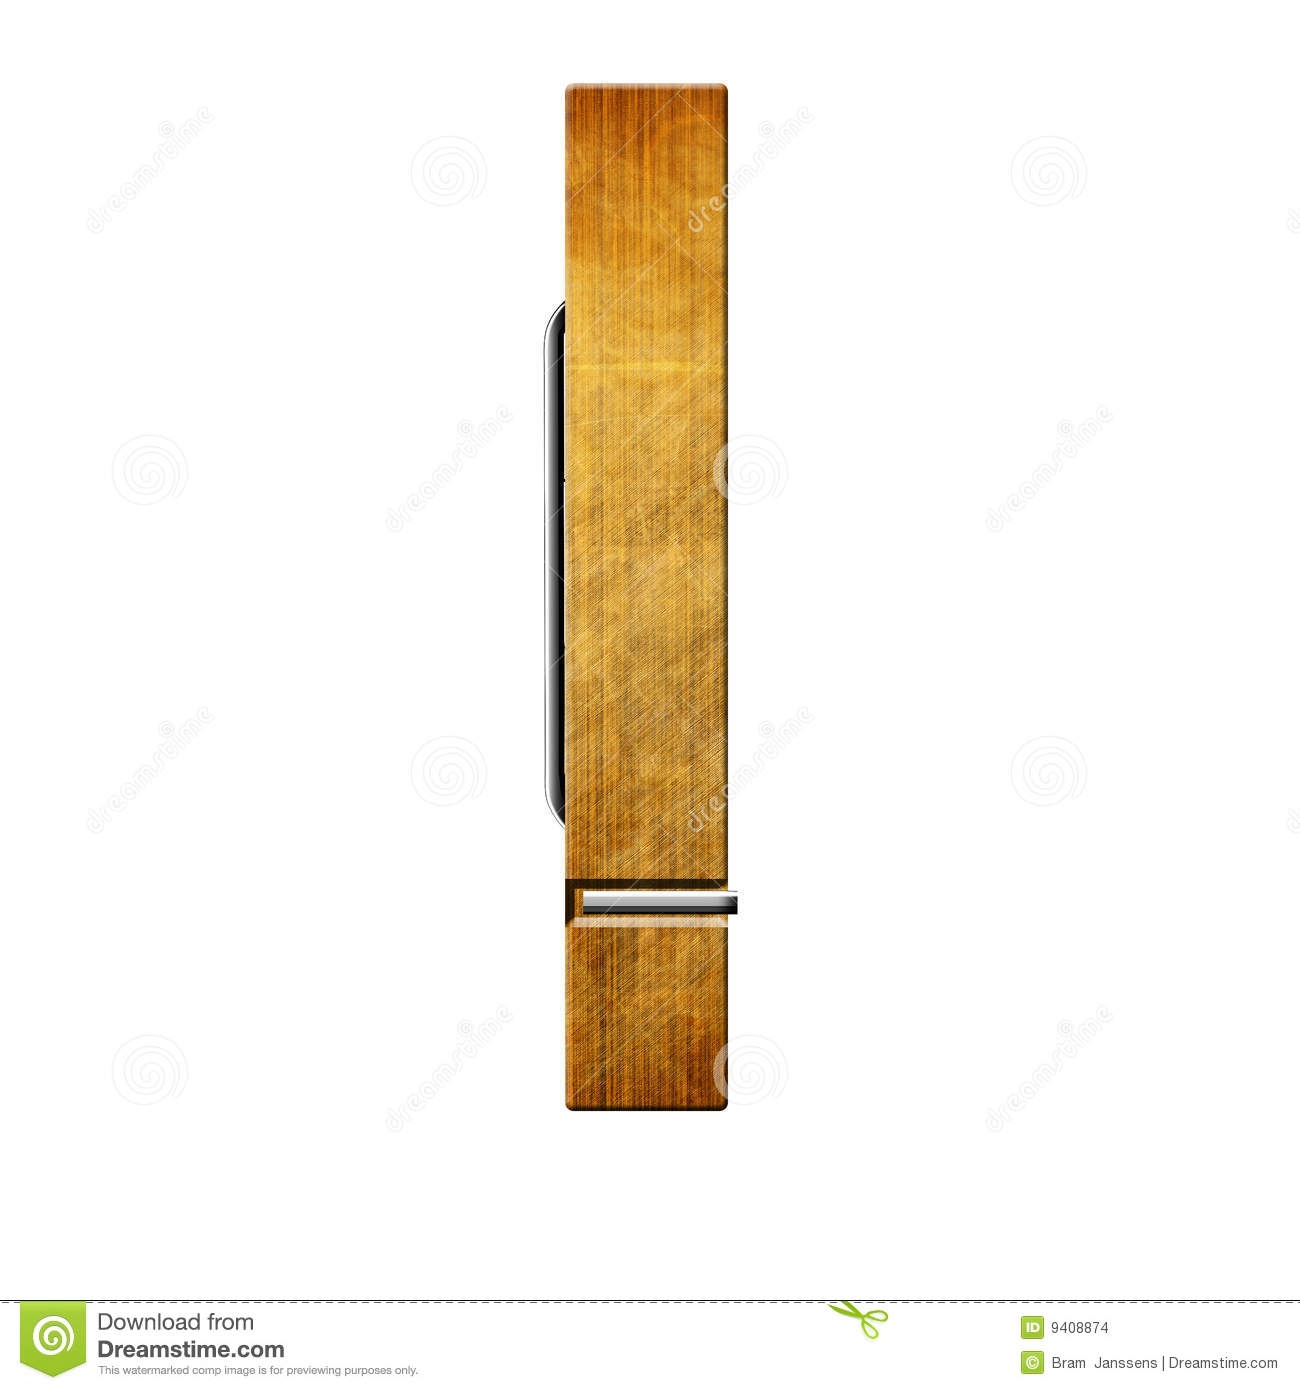 Clothespin clipart wooden peg. Best of collection digital